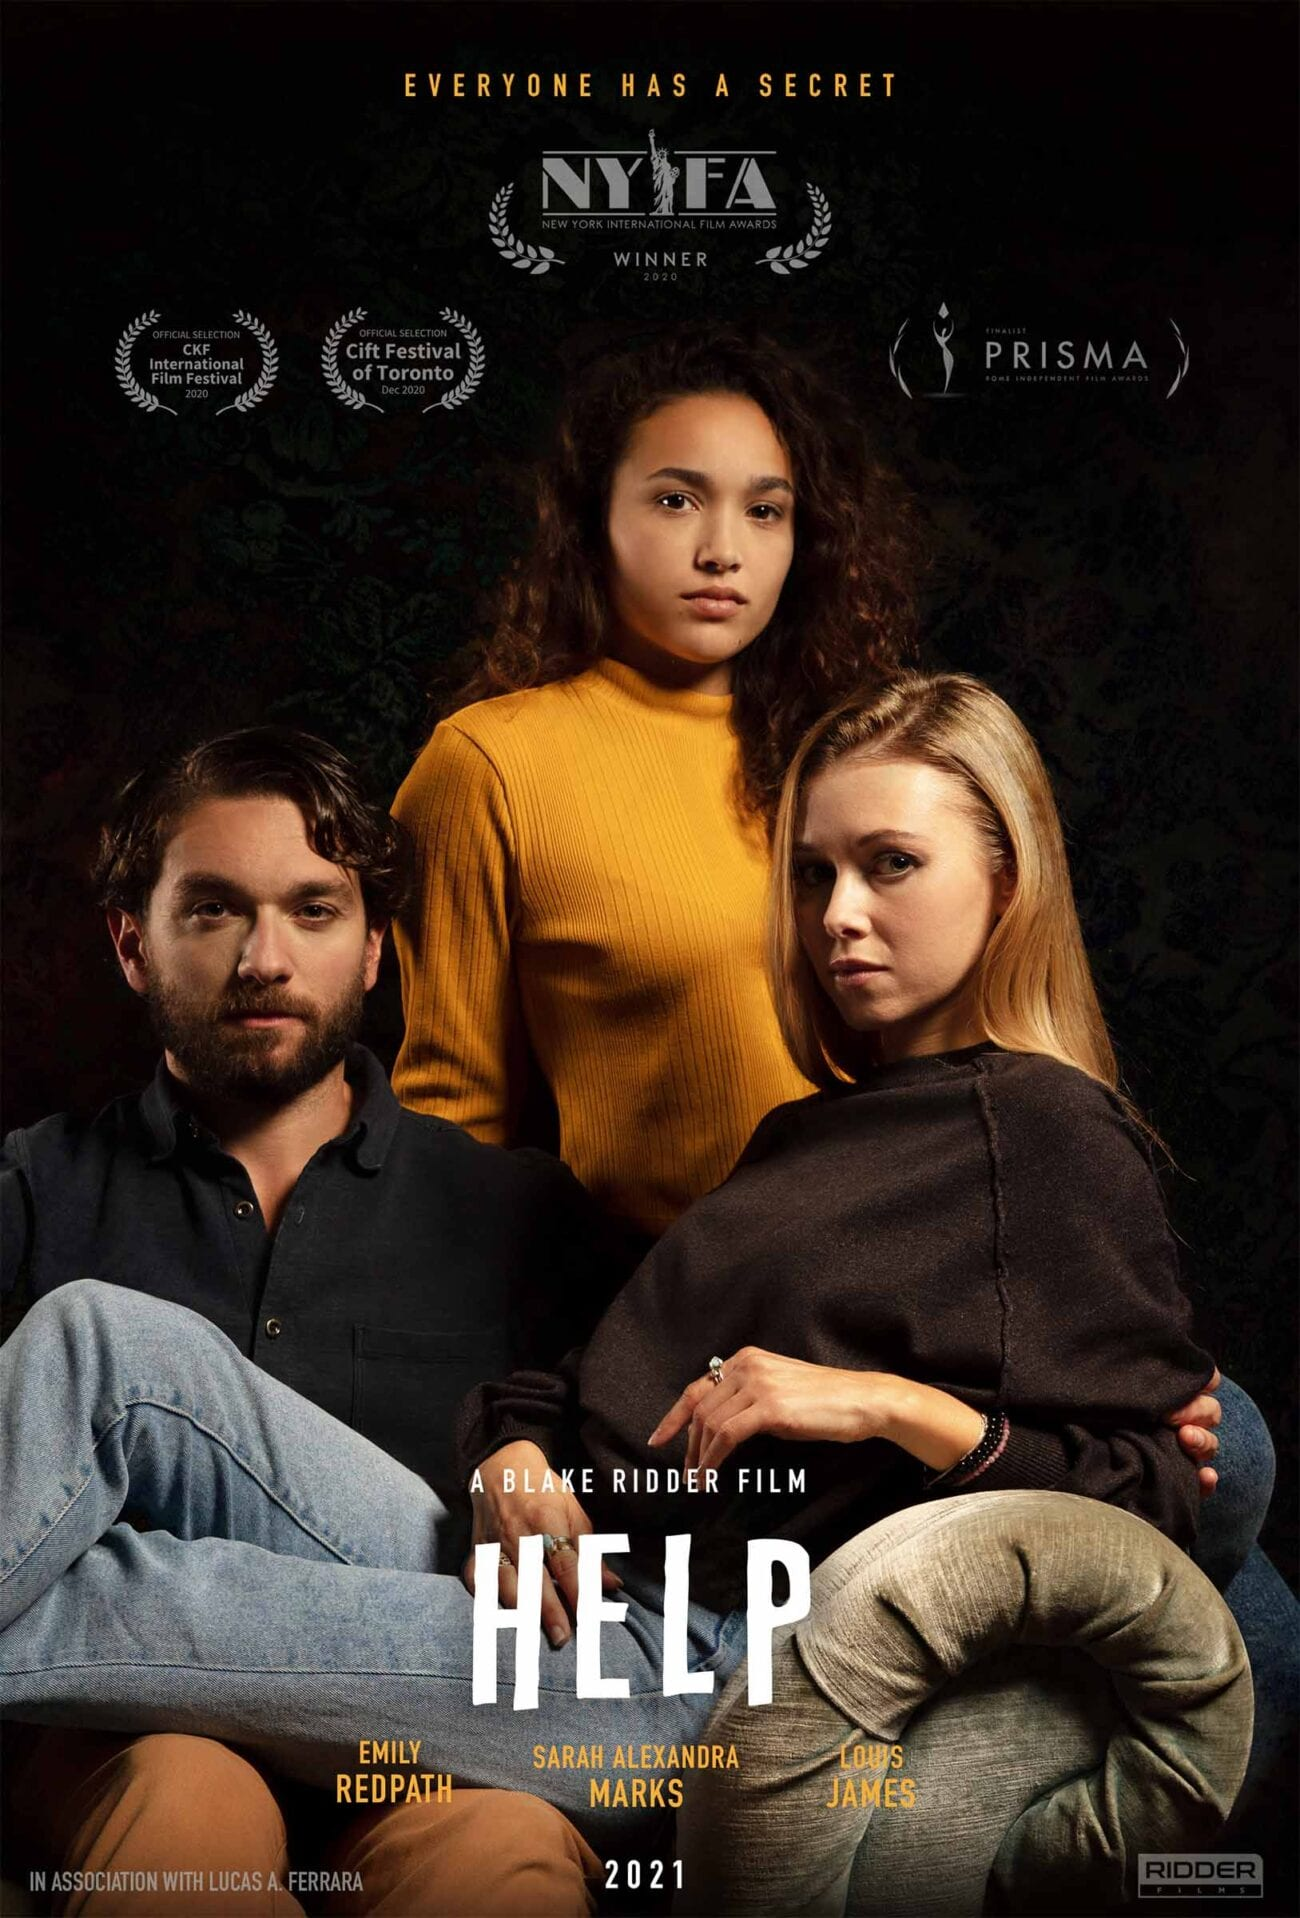 'HELP' proves indie film is the place to go for top knotch horror films. Read our interview with the film's director and lead actor.